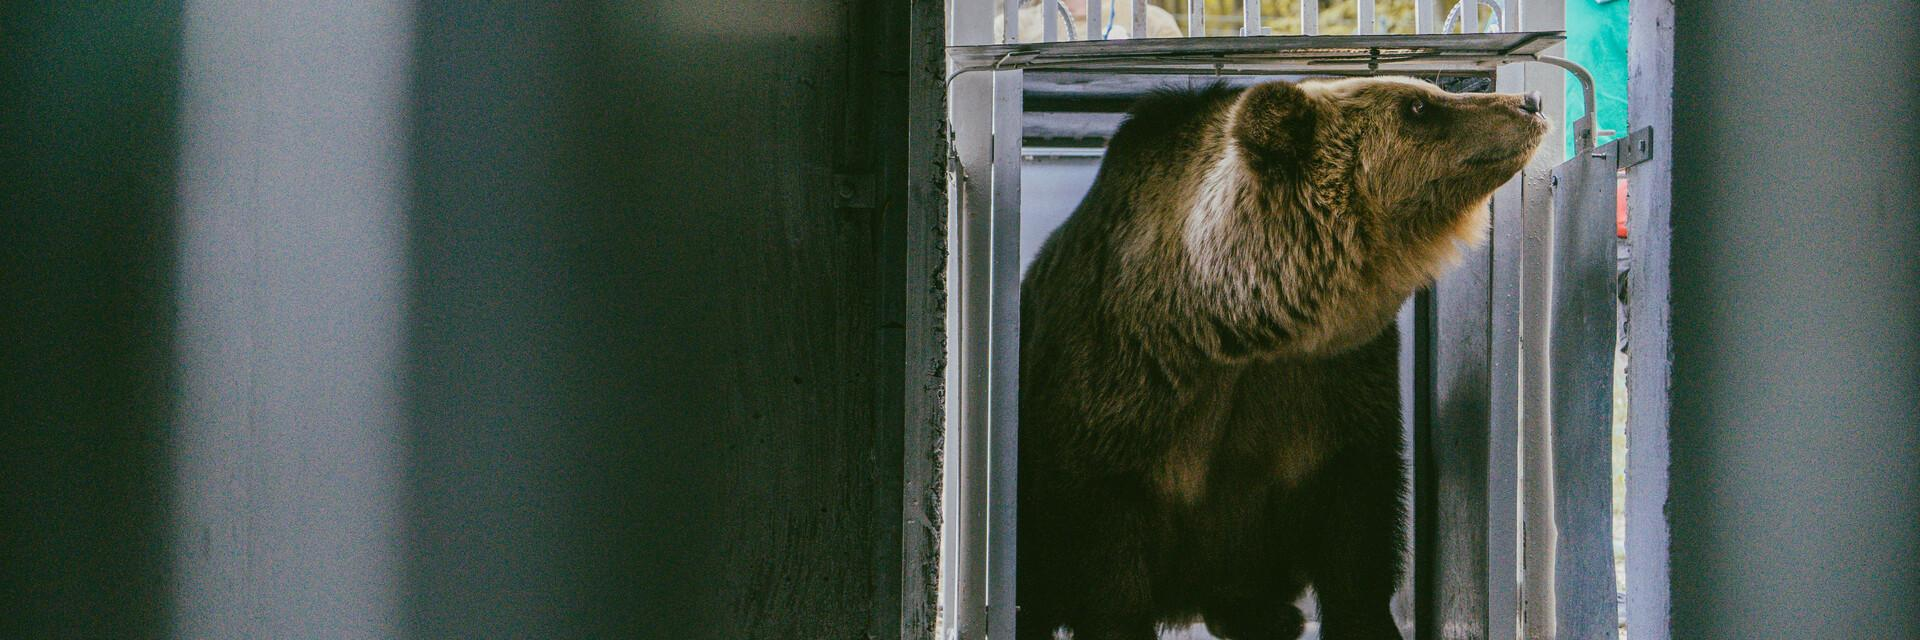 Rescue mission for bears Leo and Melanka in Ukraine